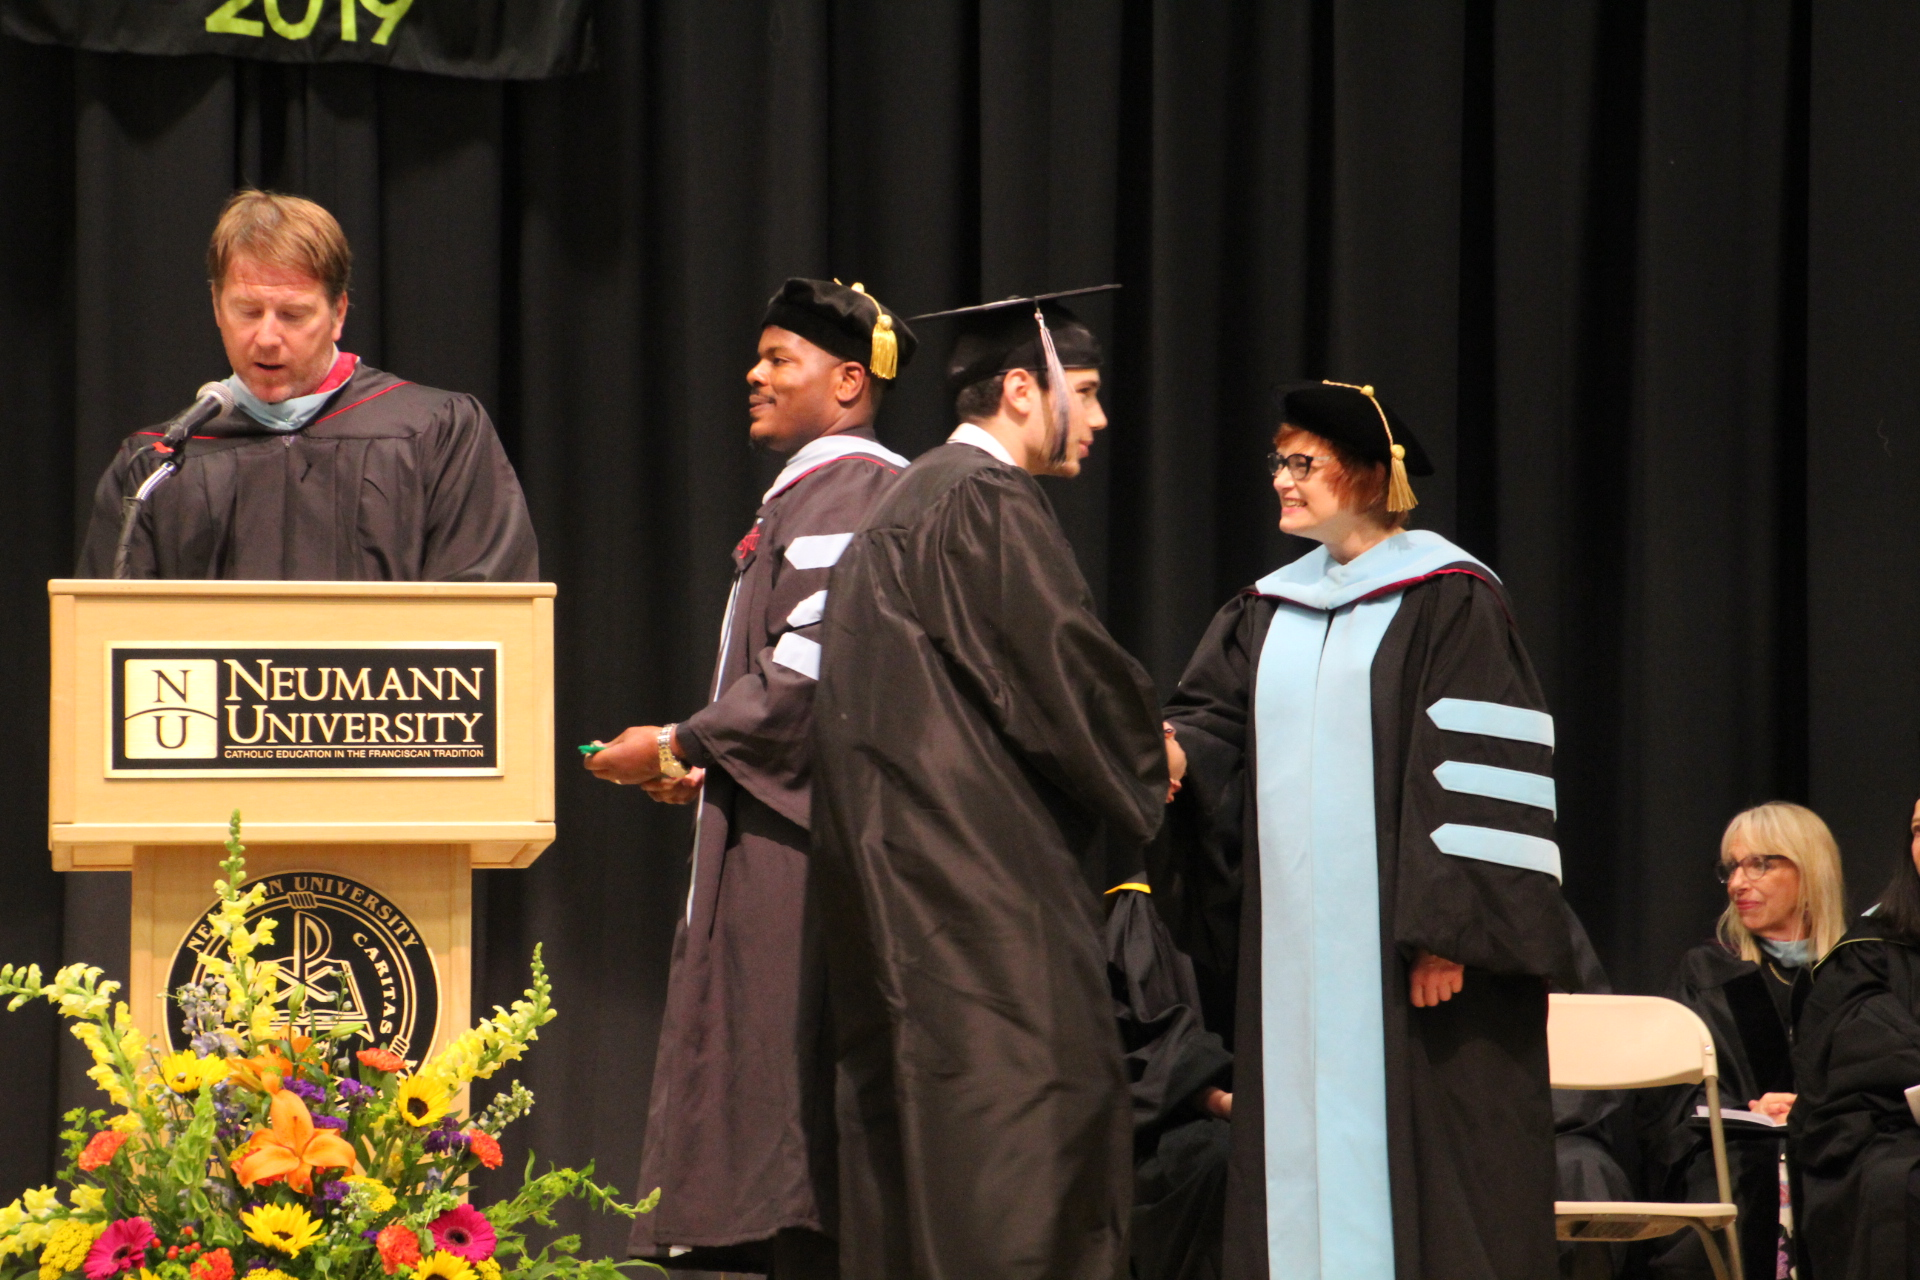 (Left to right) Strath Haven High School Assistant Principal Thomas McLaughlin, Principal Dr. Kristopher Brown, and Wallingford–Swarthmore School District Superintendent Dr. Lisa Palmer congratulated newly minted graduates from the Class of 2019 last Friday.  All Commemoration and Graduation photos are by Dierdre Abrahamsson.